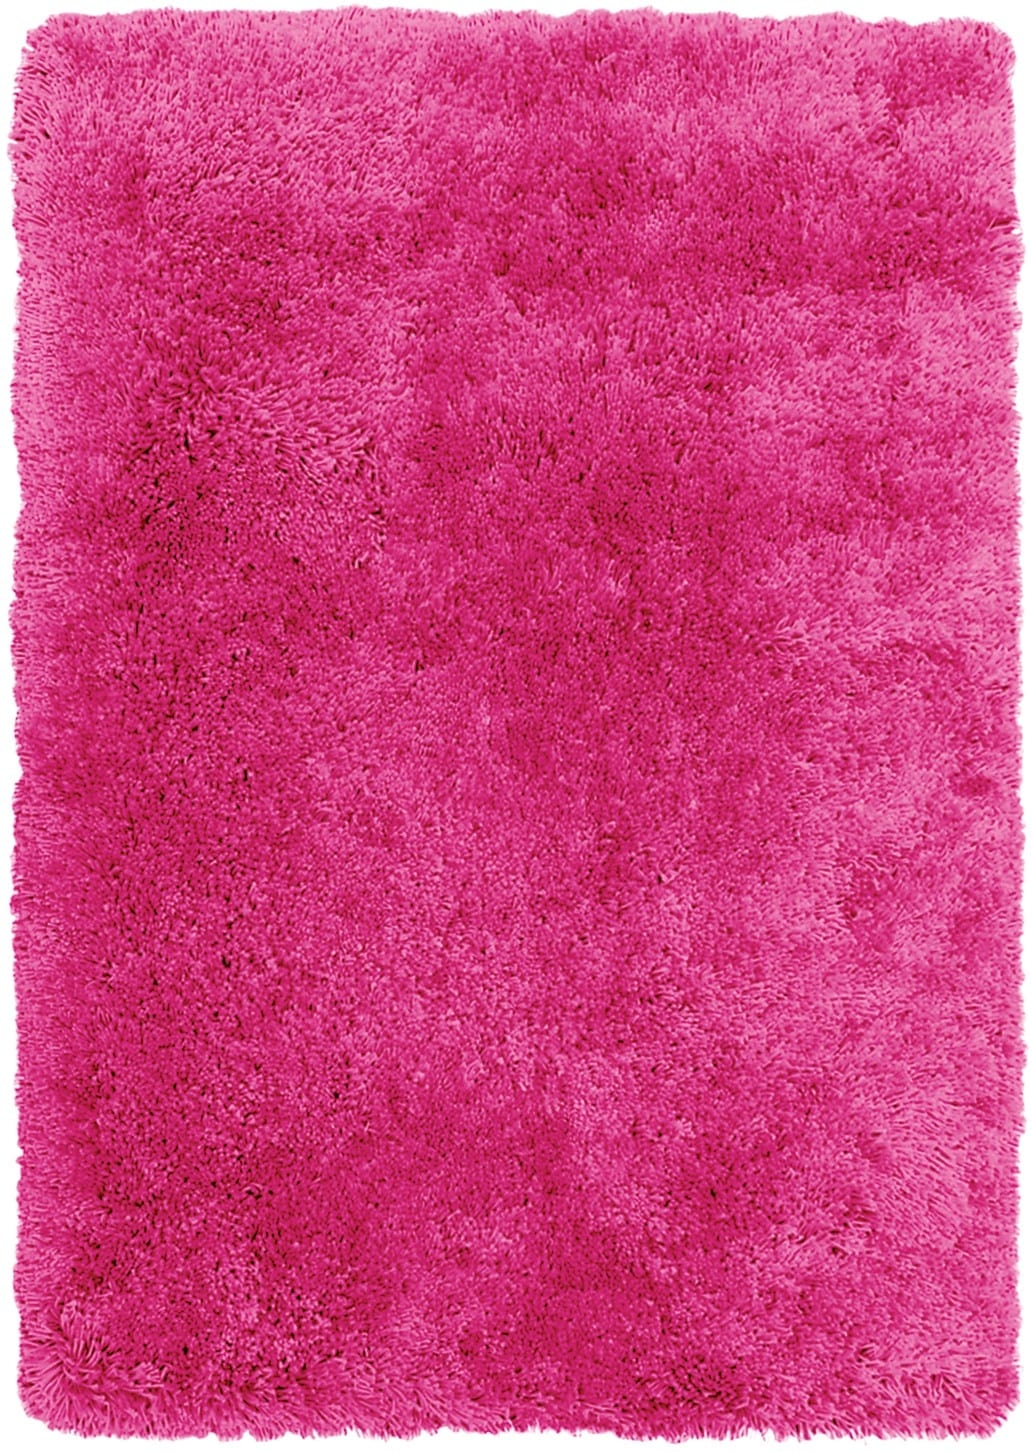 Pink Fashion Shag Area Rug 4 39 X 5 39 United Furniture